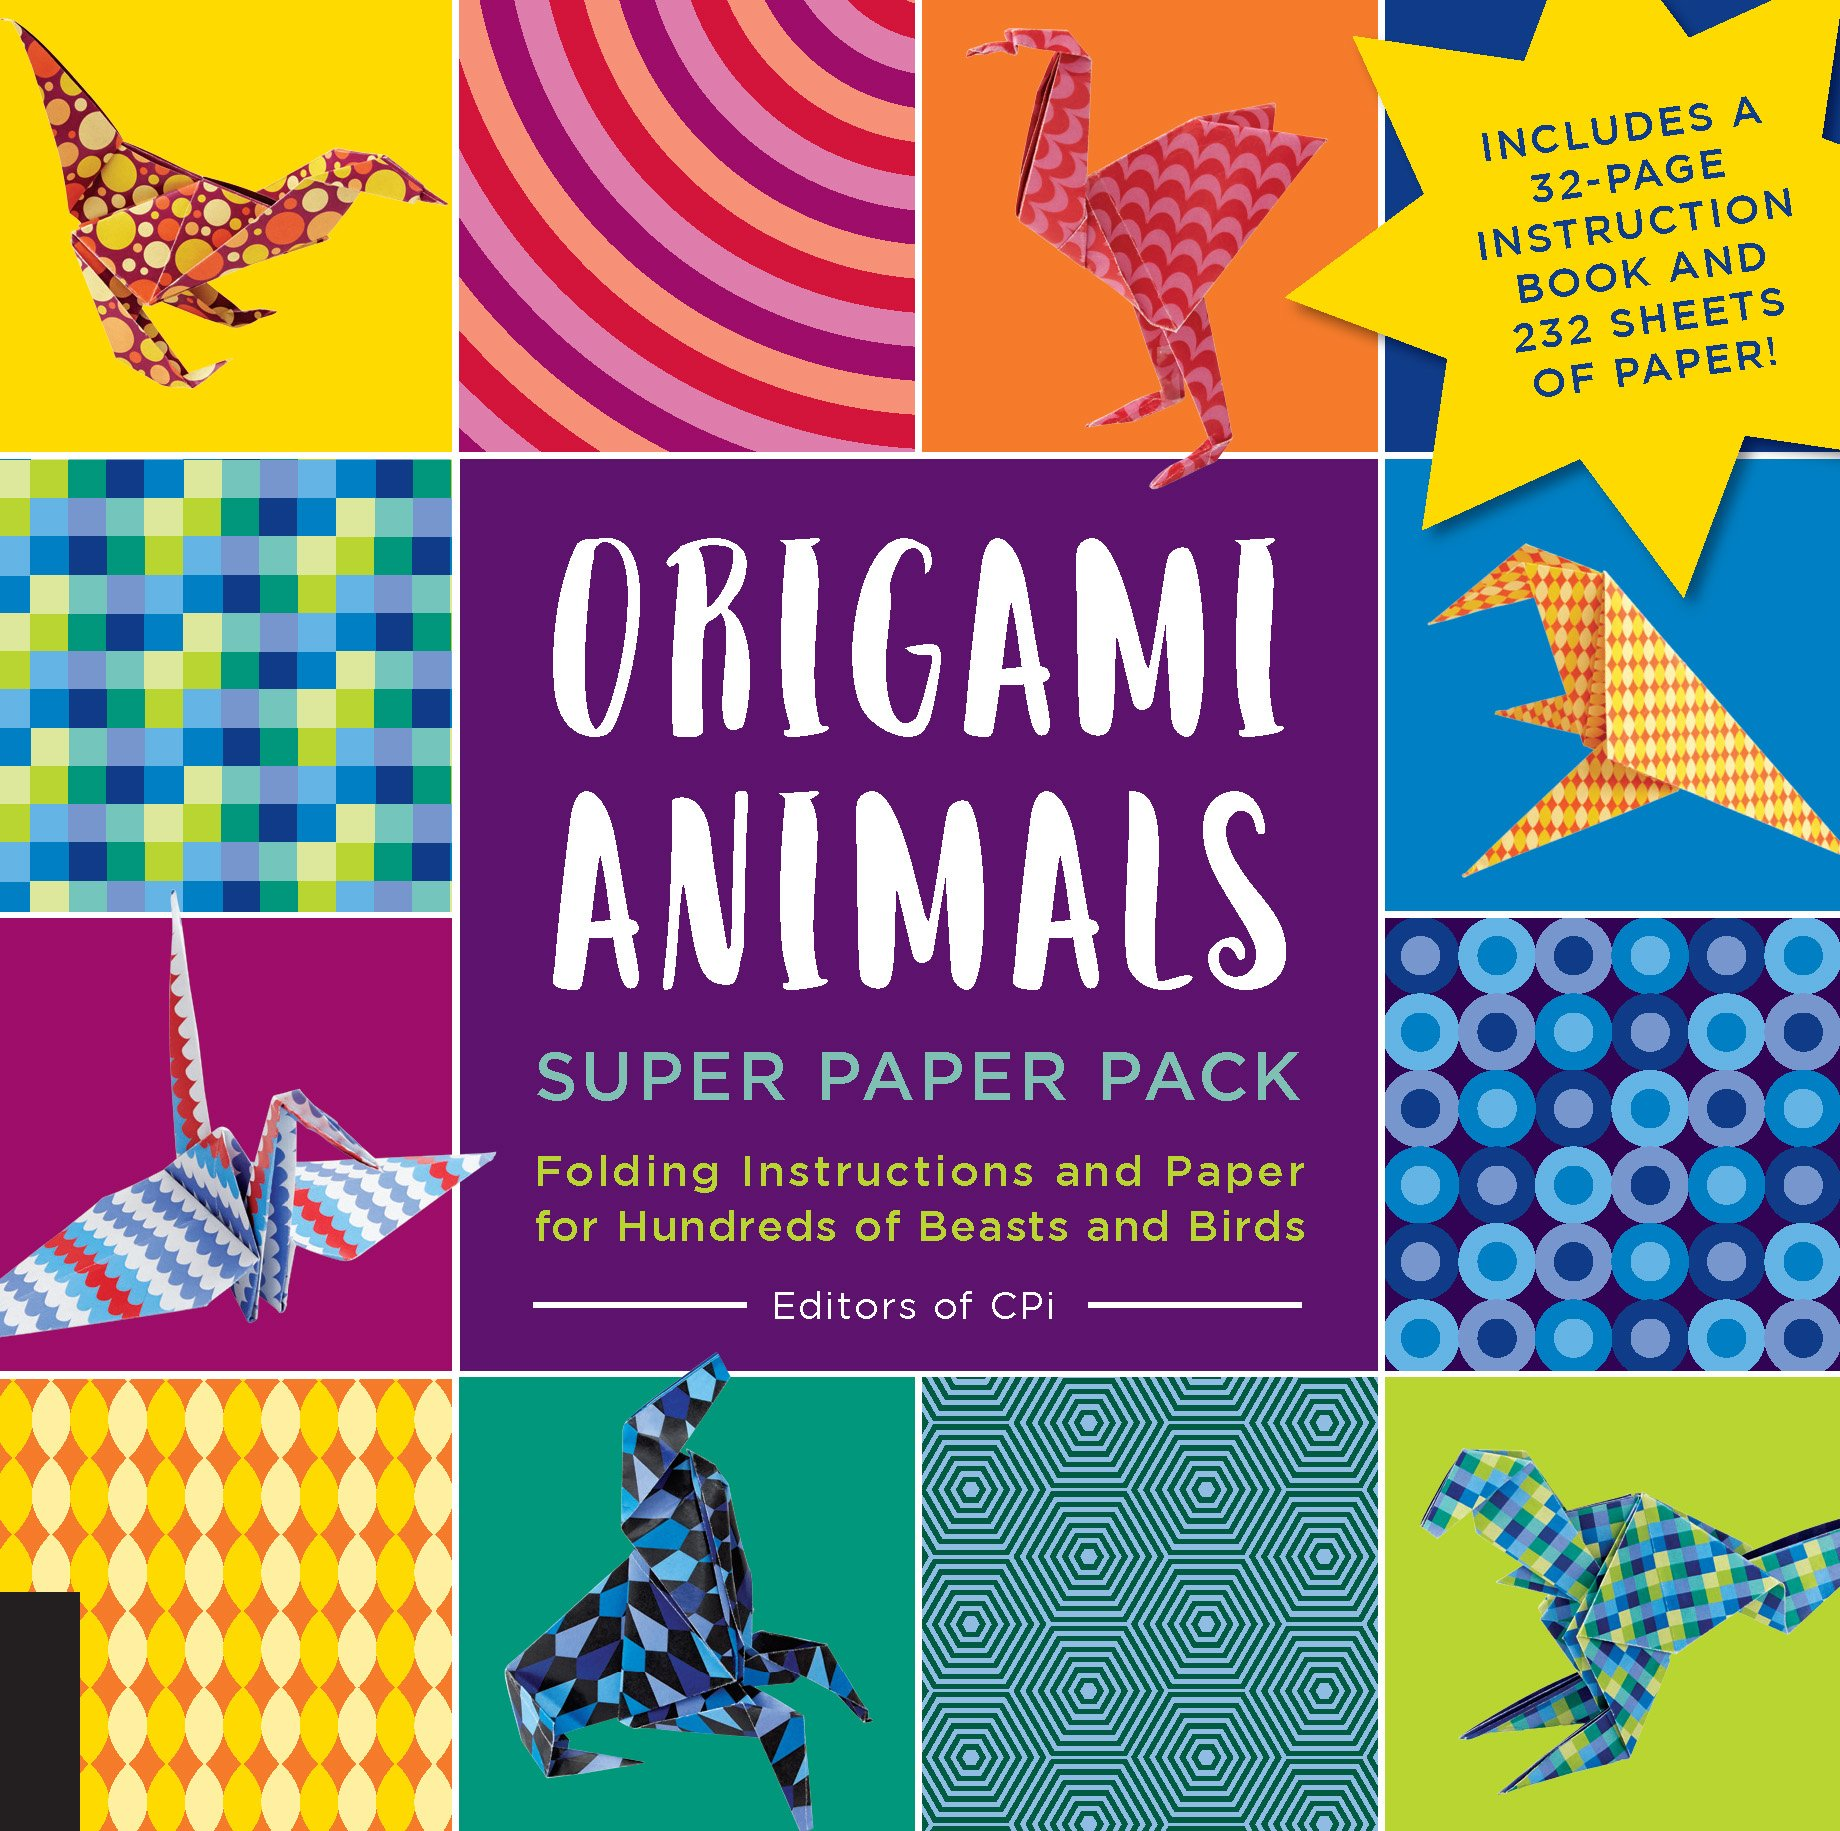 Origami Animals instructions | 1831x1840